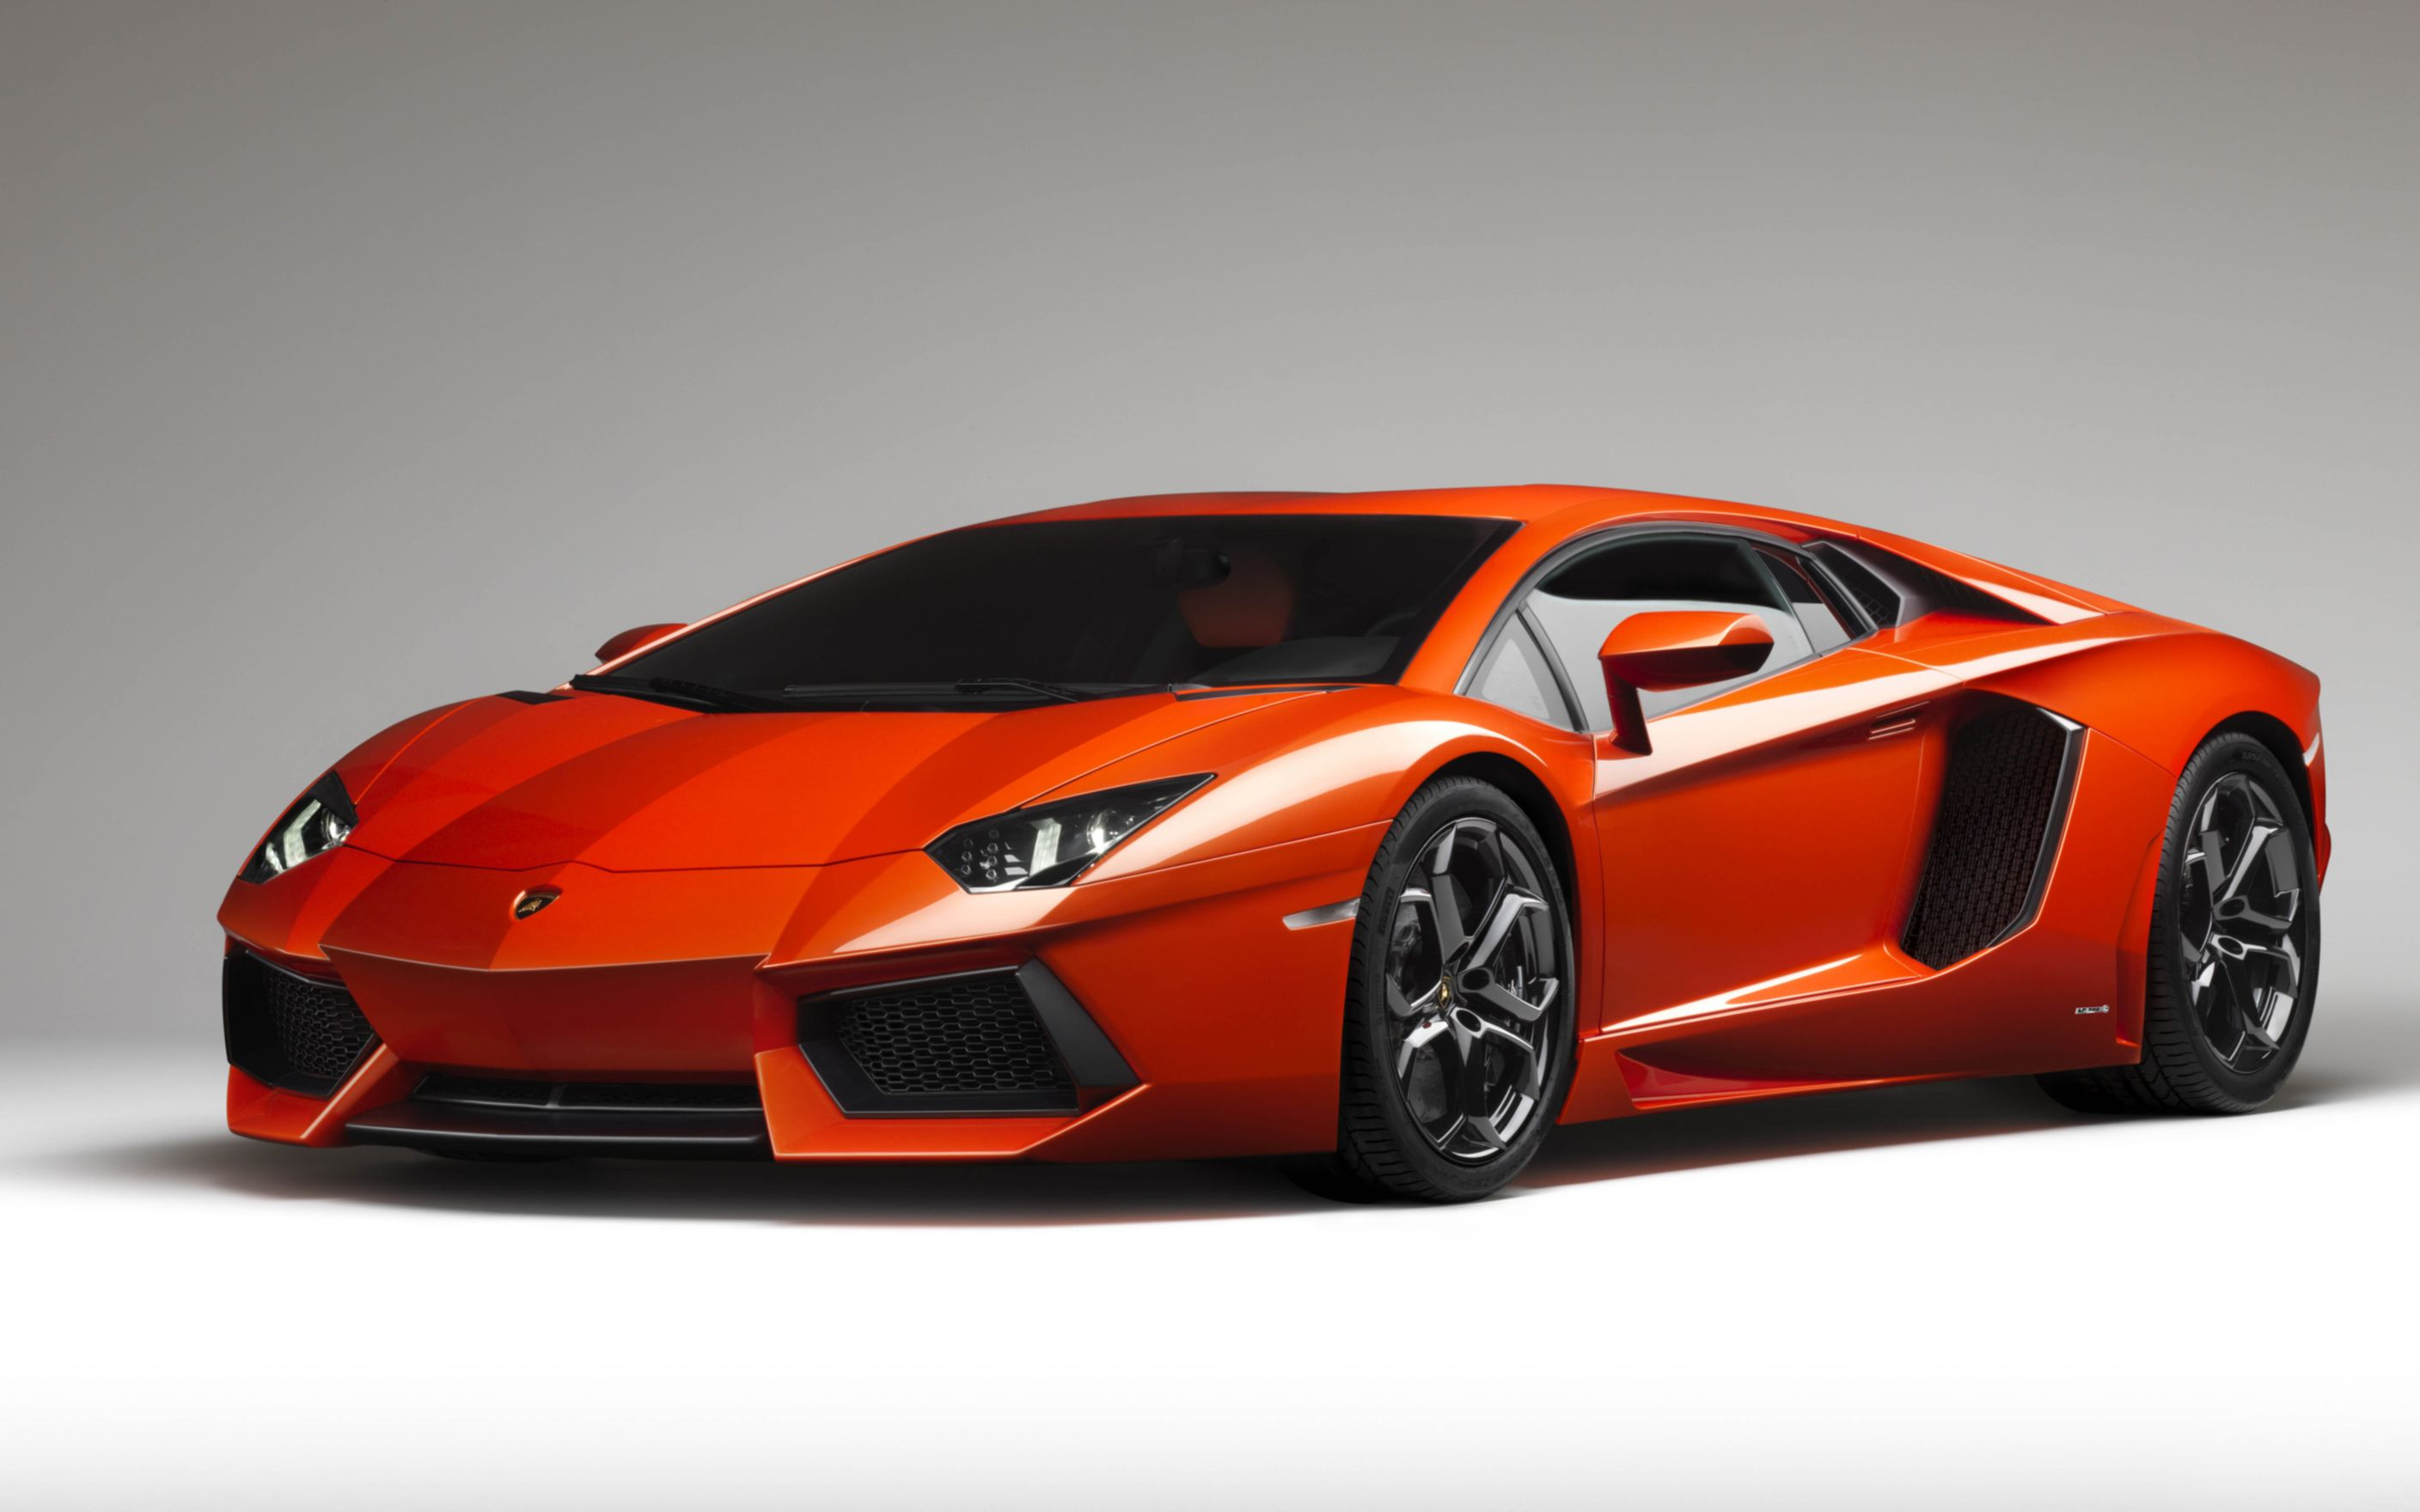 Download free HD 2012 Lamborghini Aventador Lp700 4 Wide Wallpaper, image